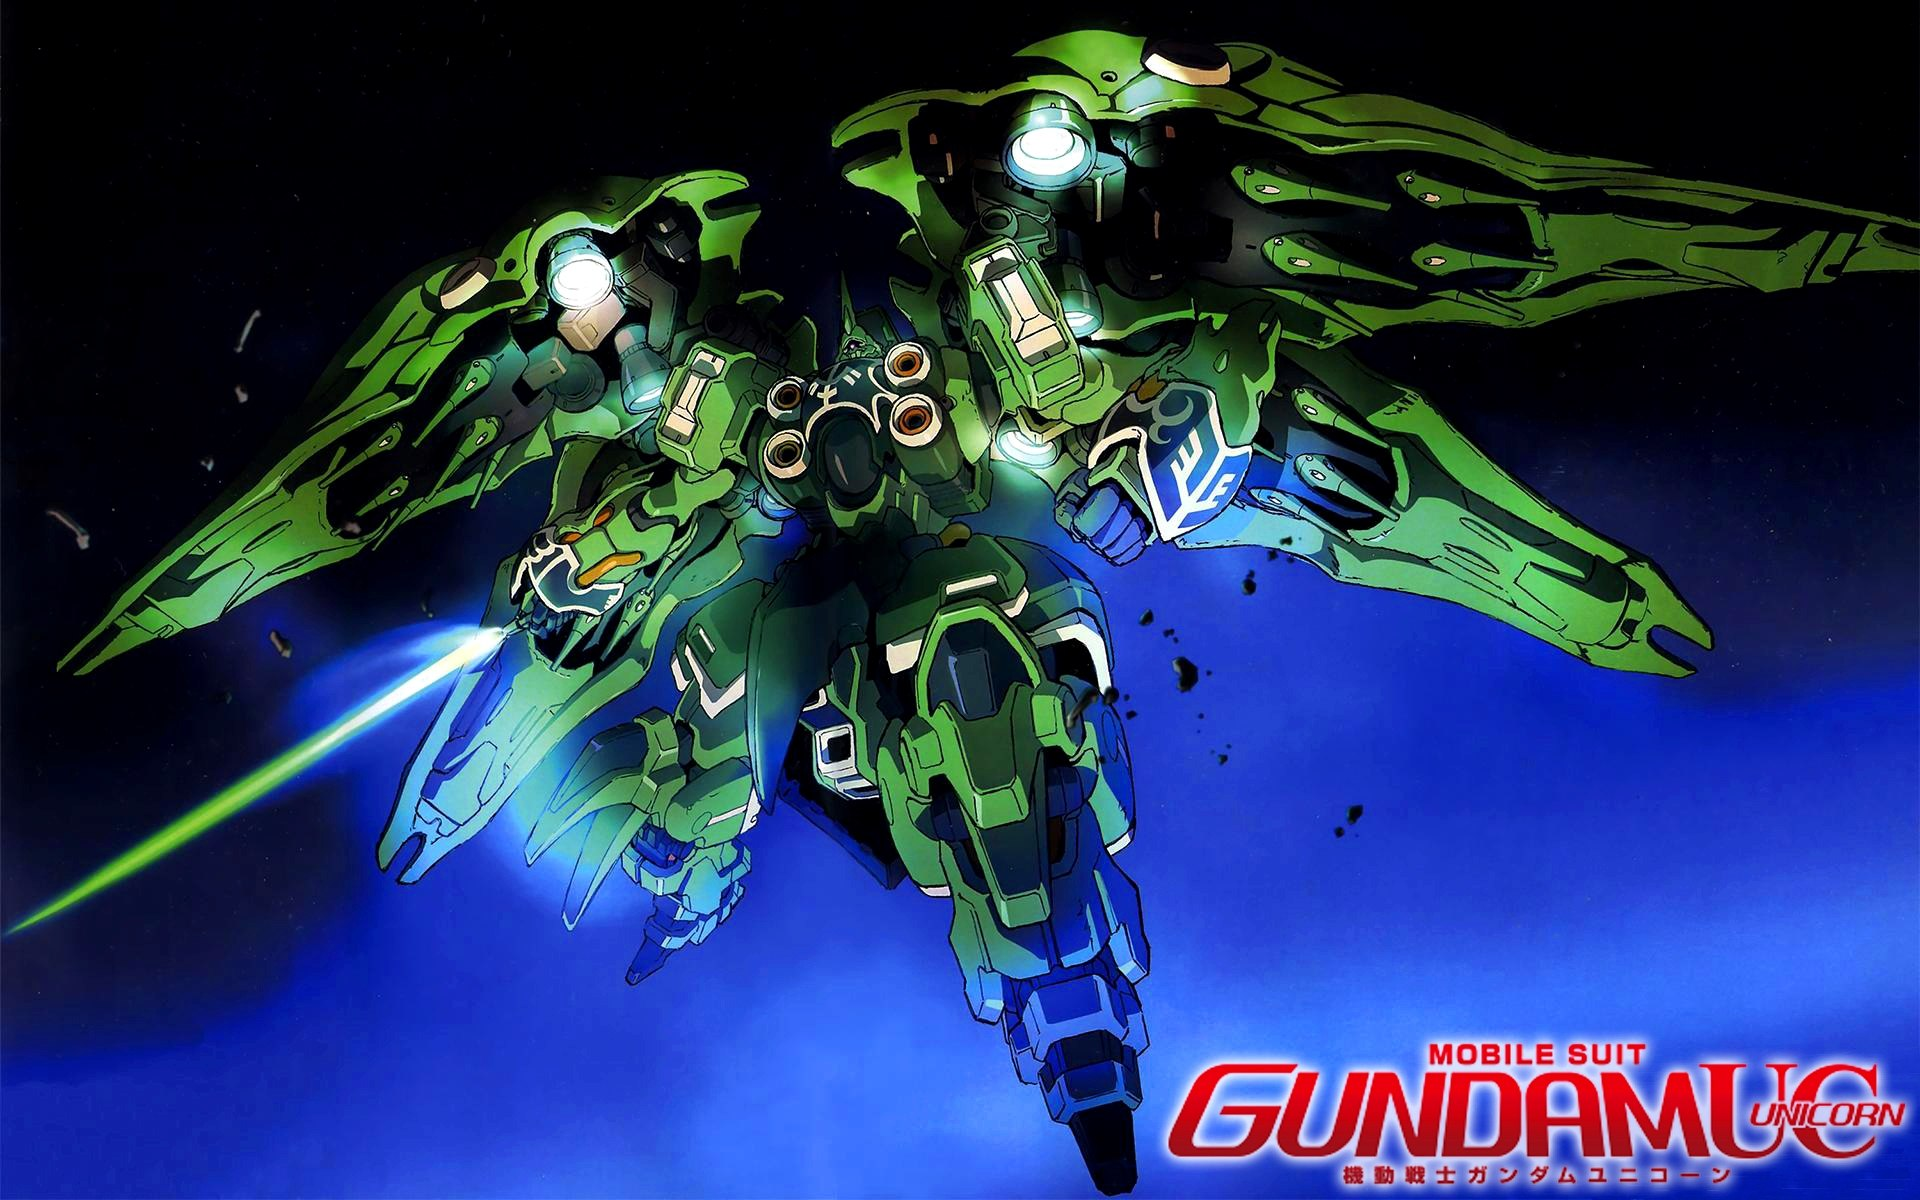 Gundam wallpaper 1920x1200 HQ WALLPAPER   30201 1920x1200